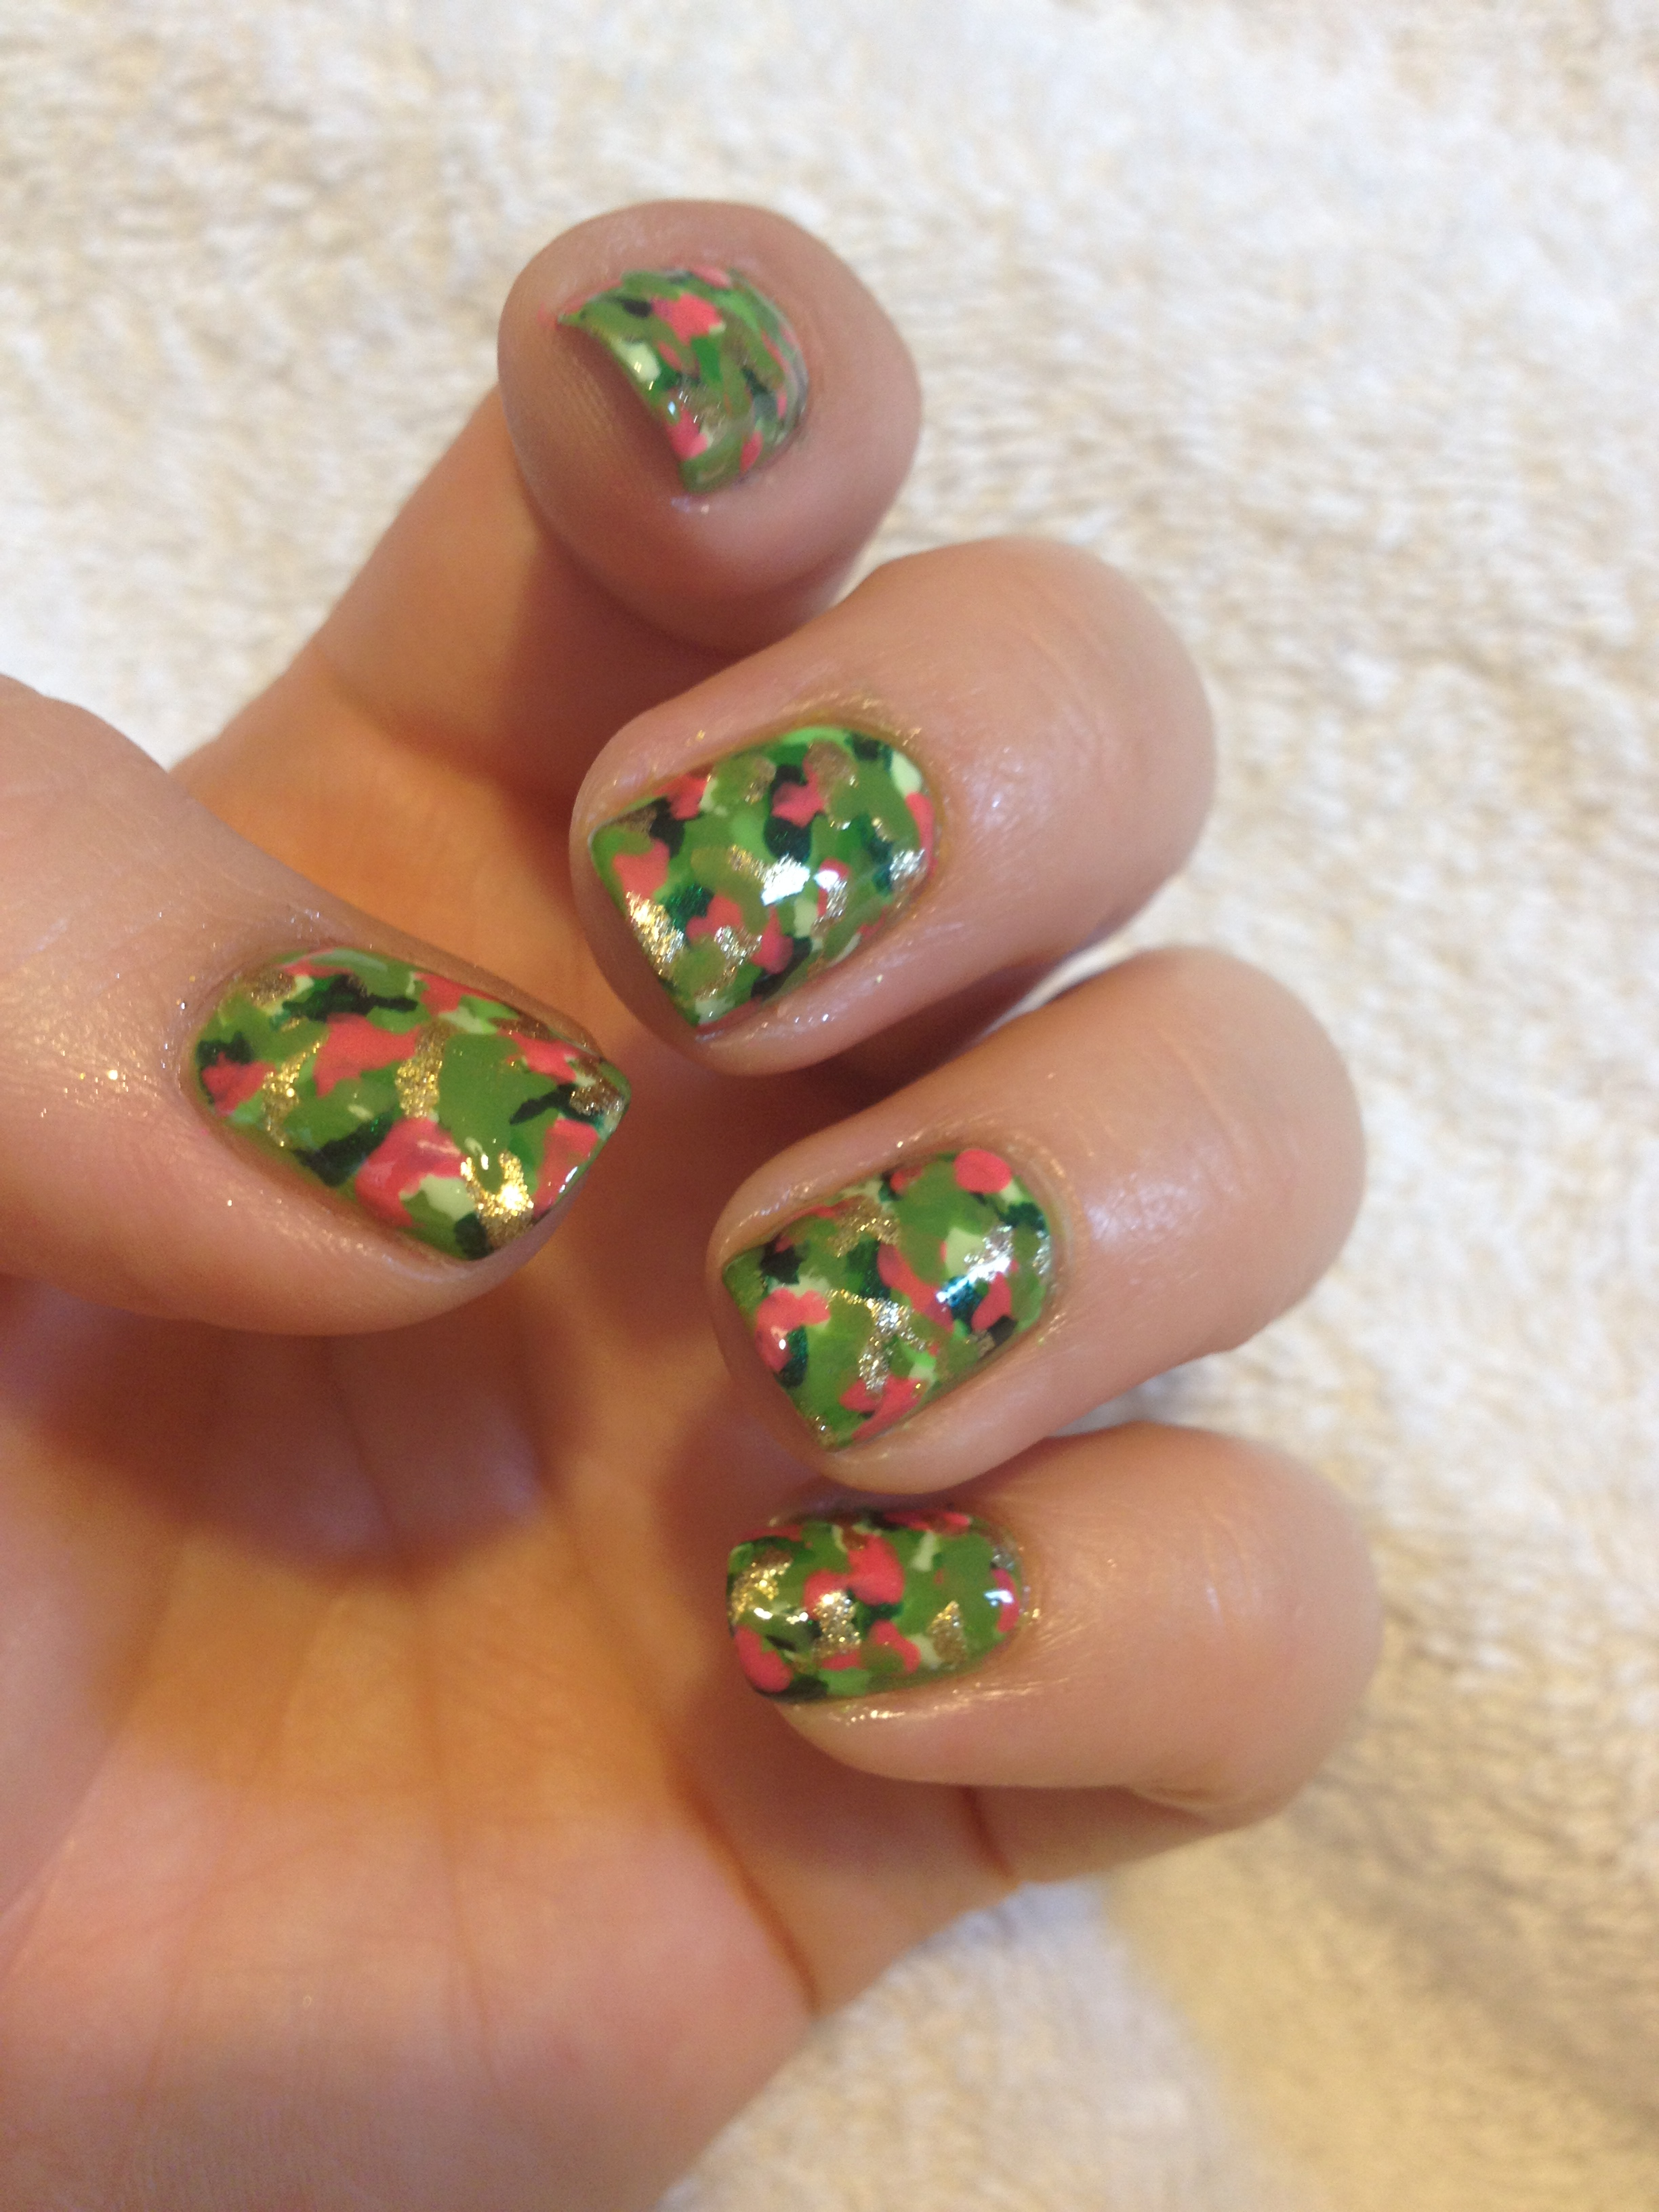 Day 4: Green Nails (31dc2014) – Polish Me Snazzy